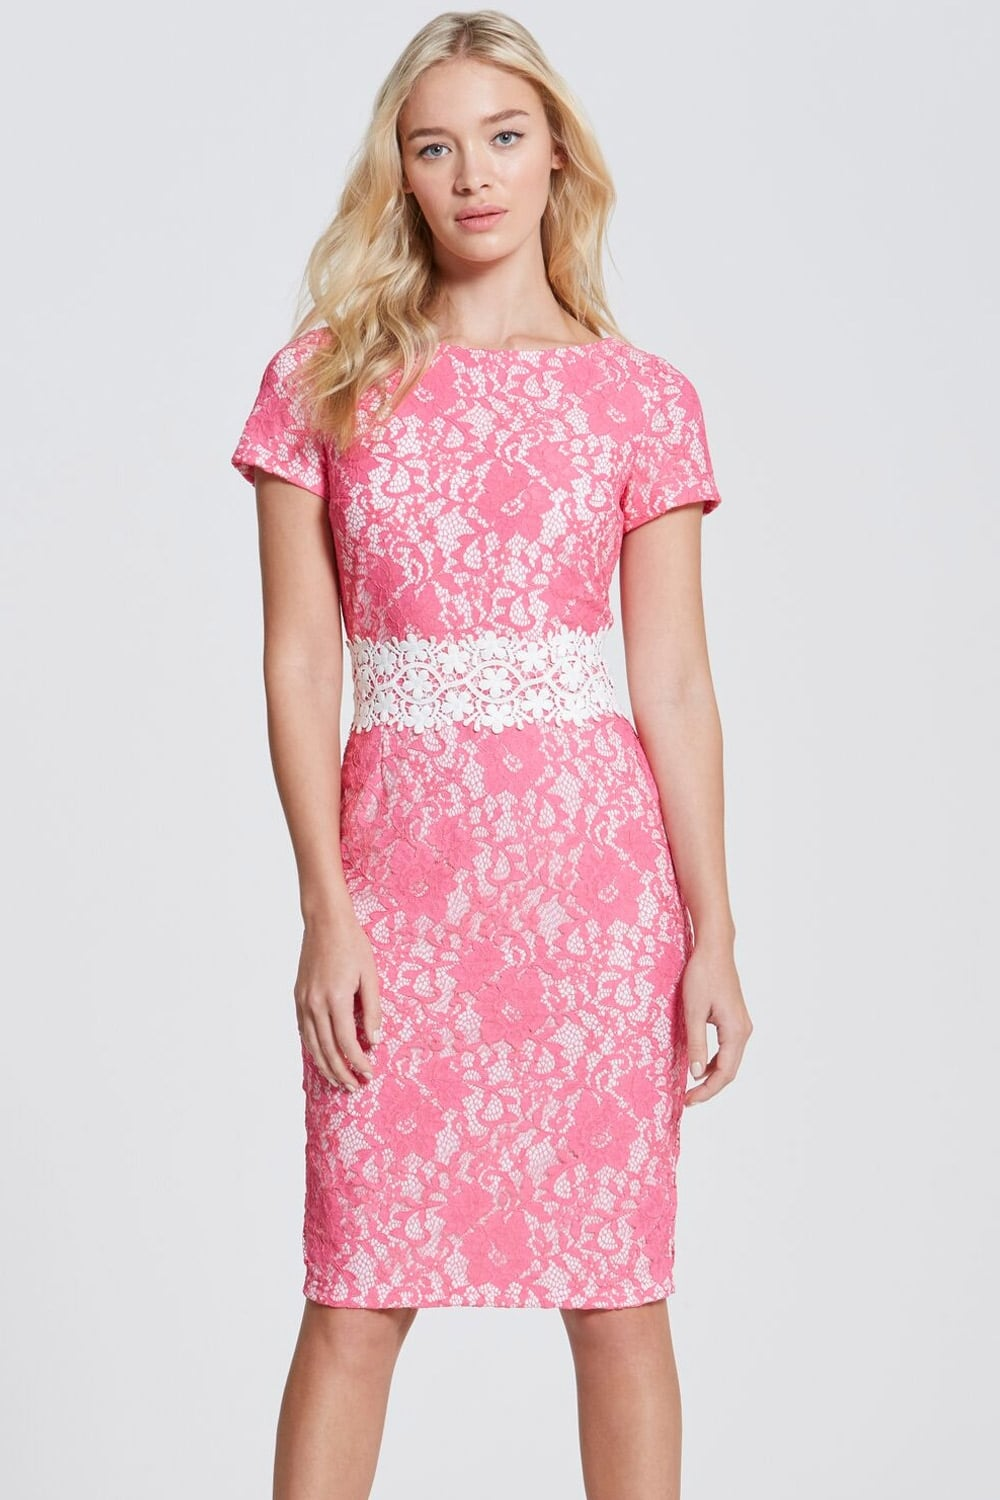 Paper Dolls Pink Lace Bodycon Dress with Crochet Trim - Paper ...